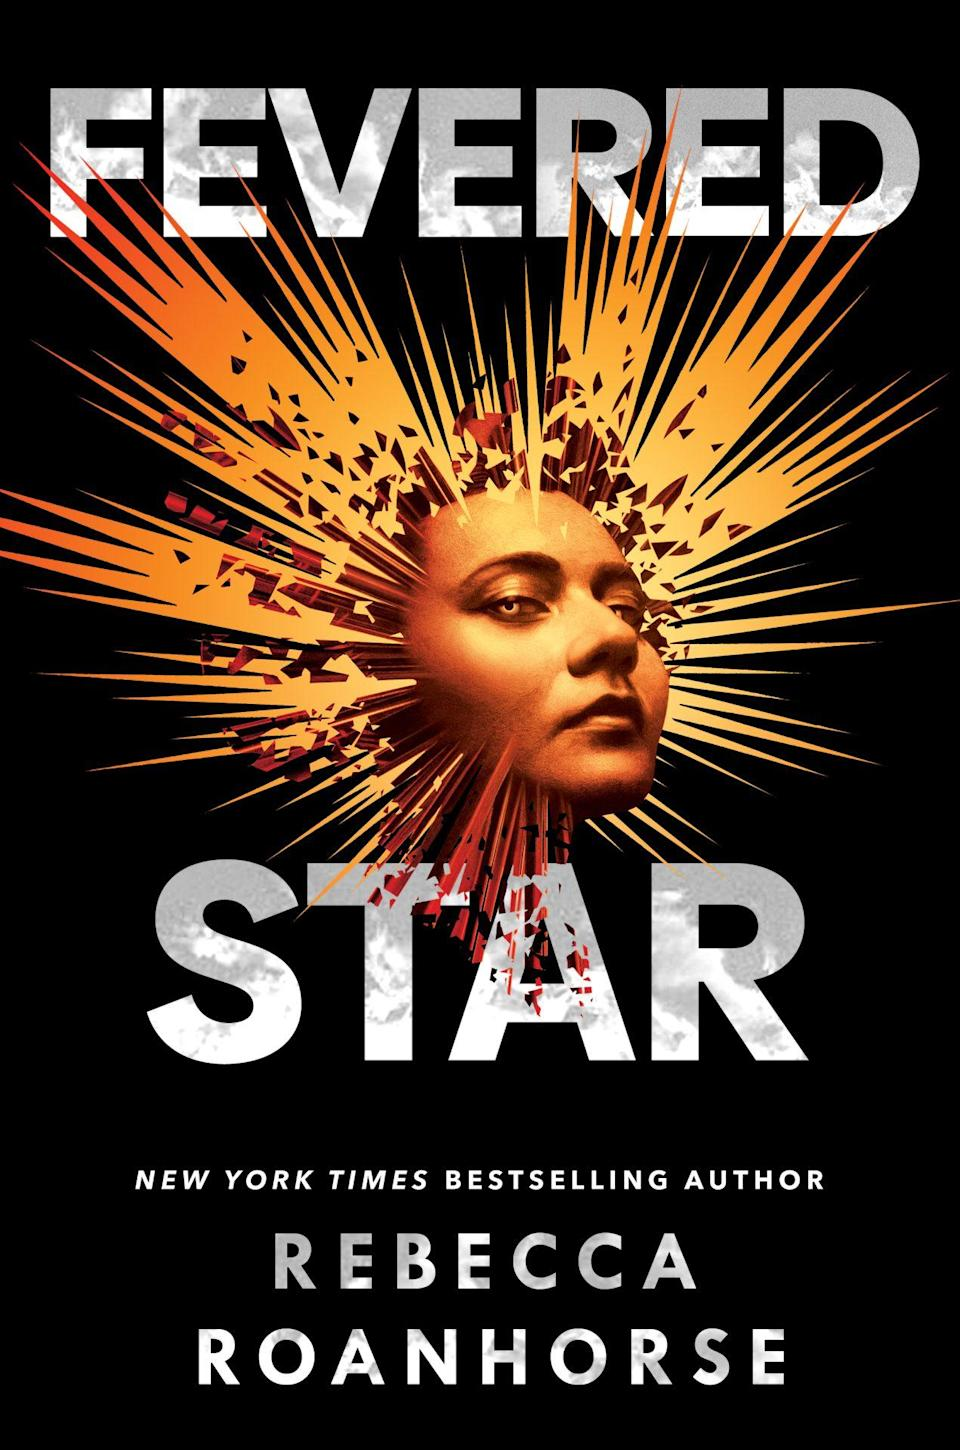 Fevered Star book cover shows light radiating from a woman's head